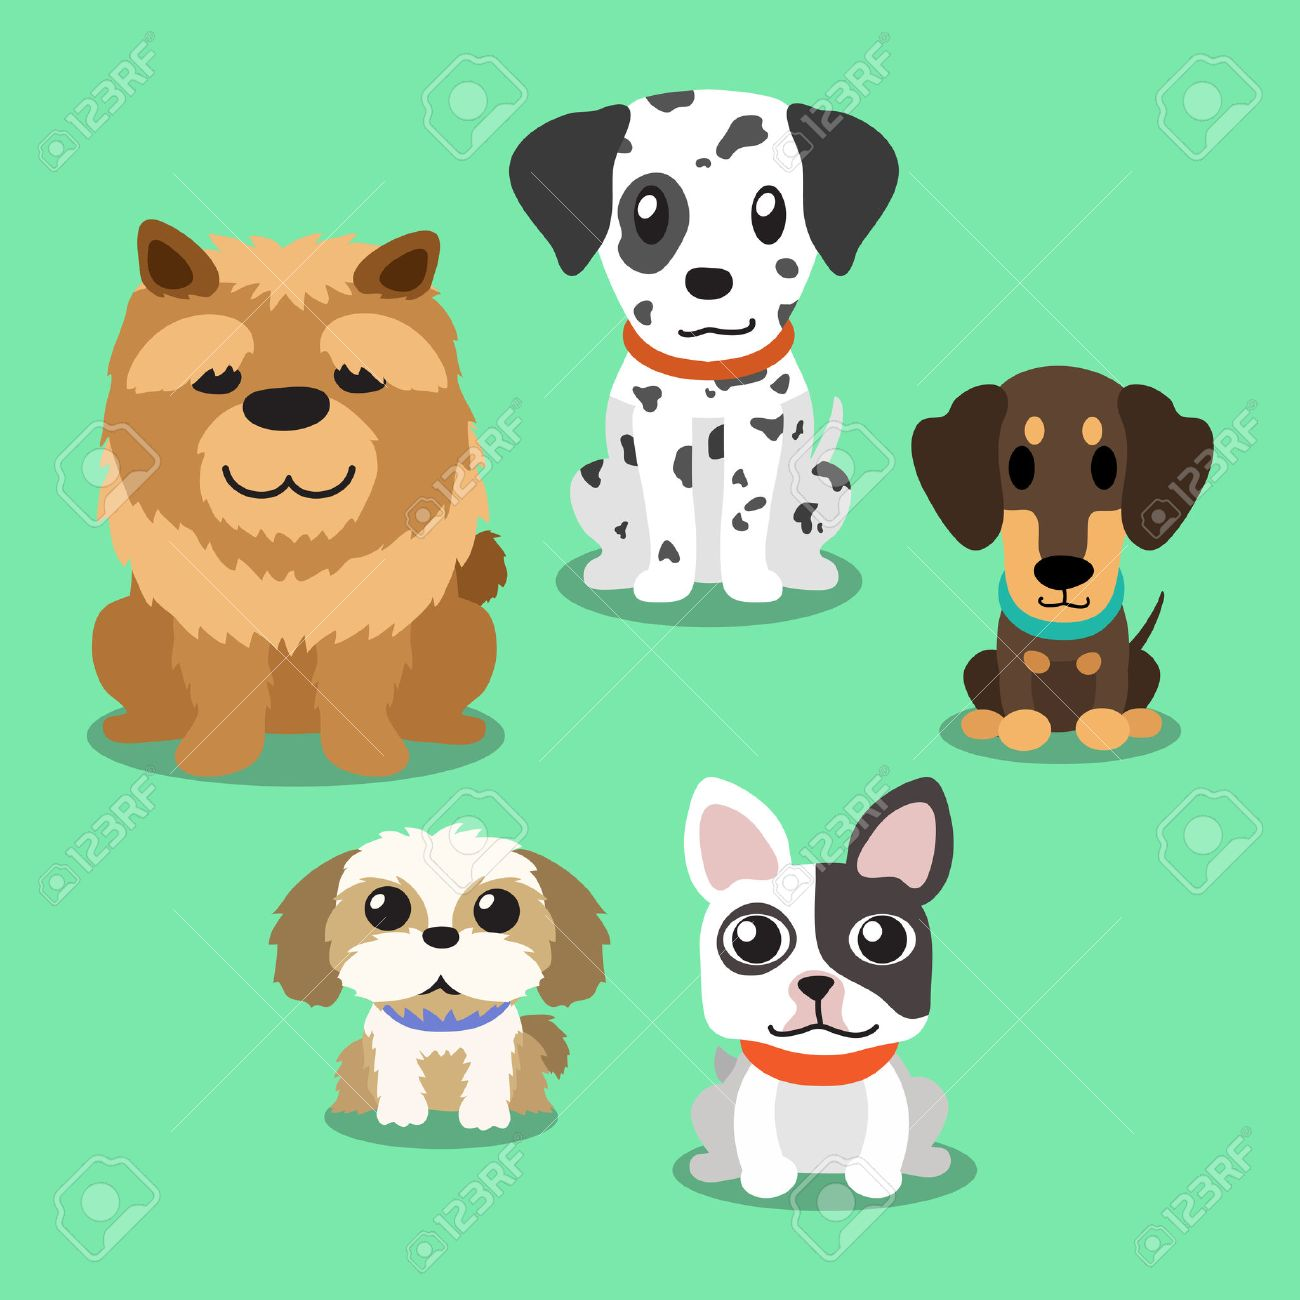 cartoon dogs standing royalty free cliparts vectors and stock